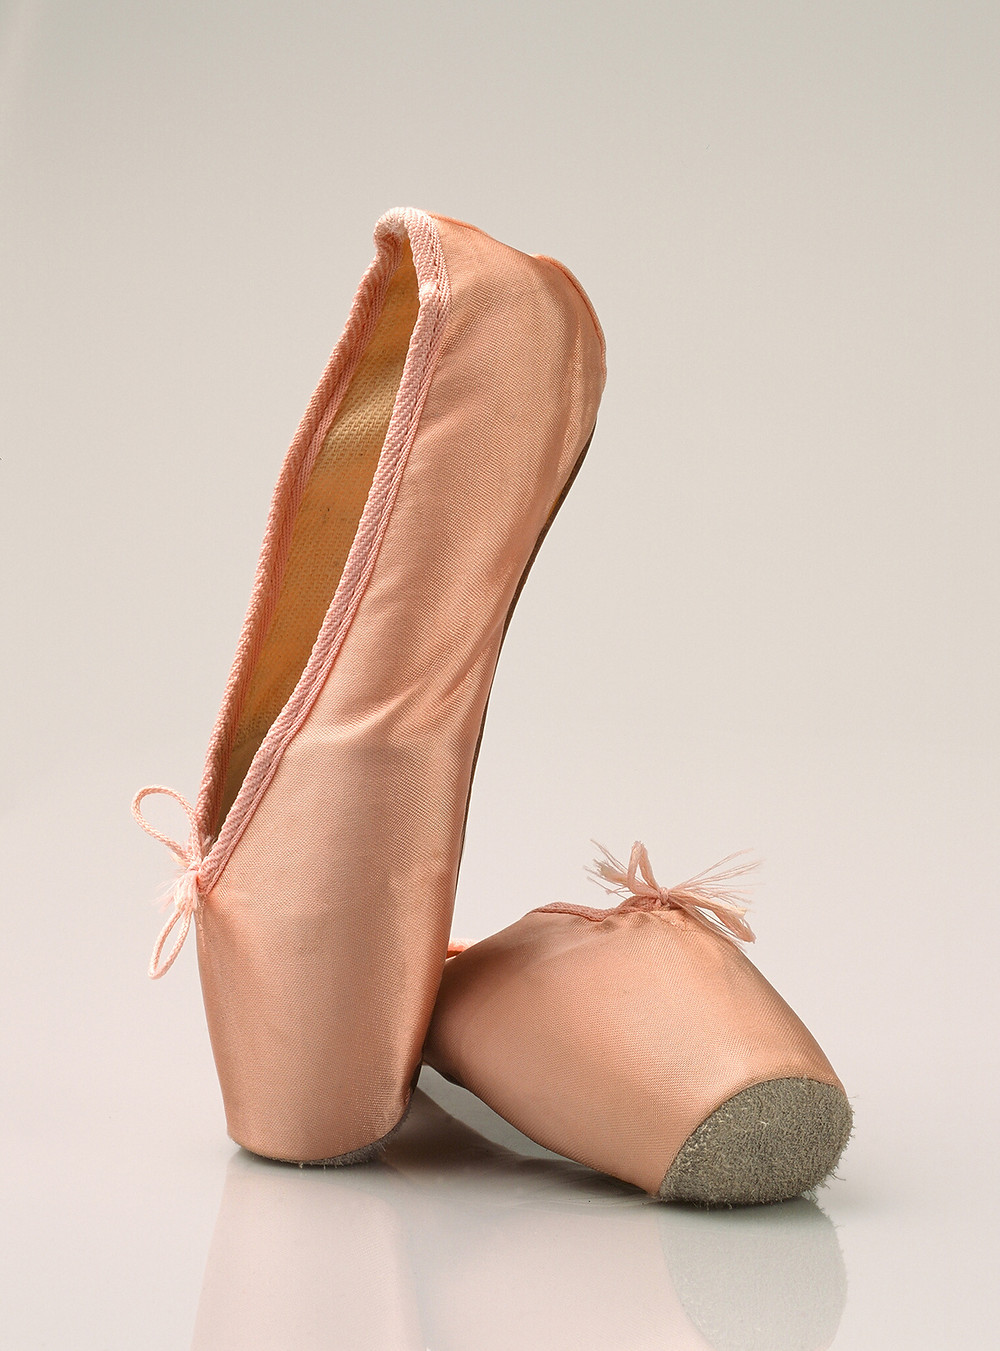 Do my childs Ballet Shoes still fit?